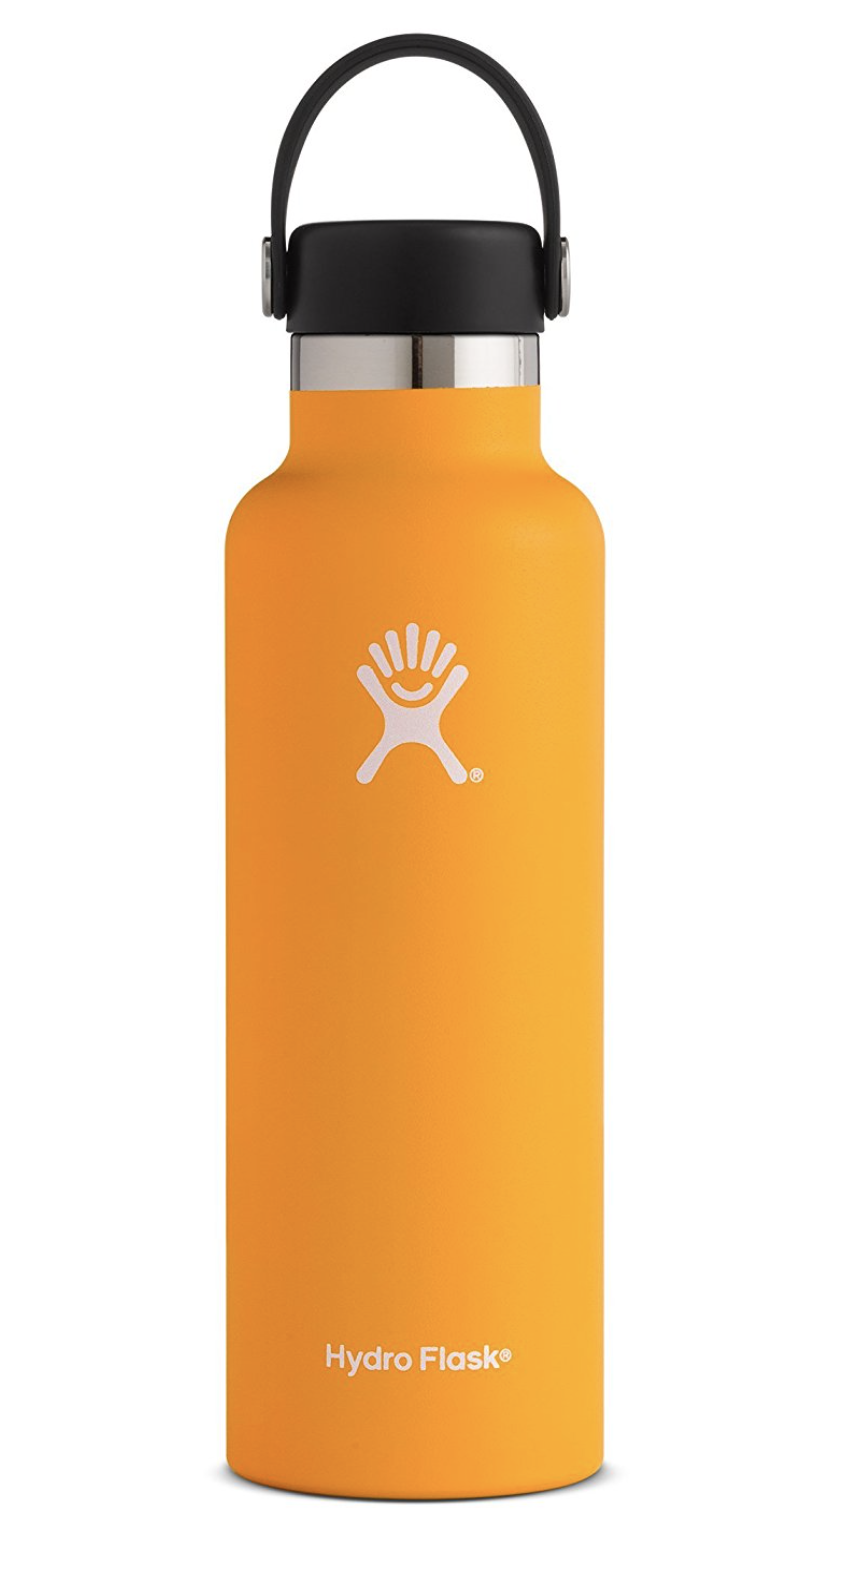 Hydro Flask -  Hydro Flask Double Wall Vacuum Insulated Stainless Steel Leak Proof Sports Water Bottle, Standard Mouth with BPA Free Flex Cap by Hydro Flask Link: http://a.co/dWxgUNW